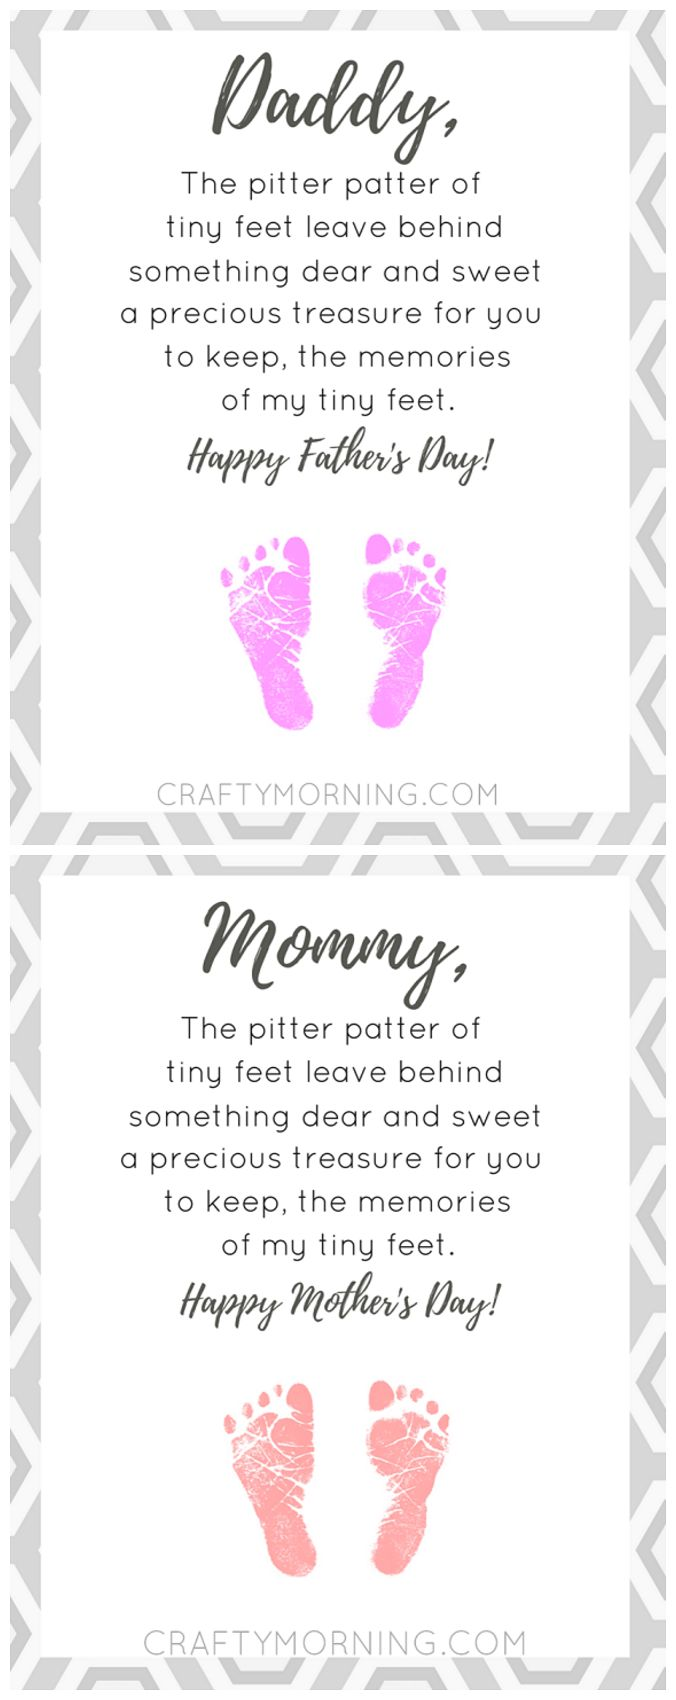 Free pitter patter of tiny feet poem printable for mom or dad (Mother's Day or Father's Day) so sweet for kids to make their footprints!